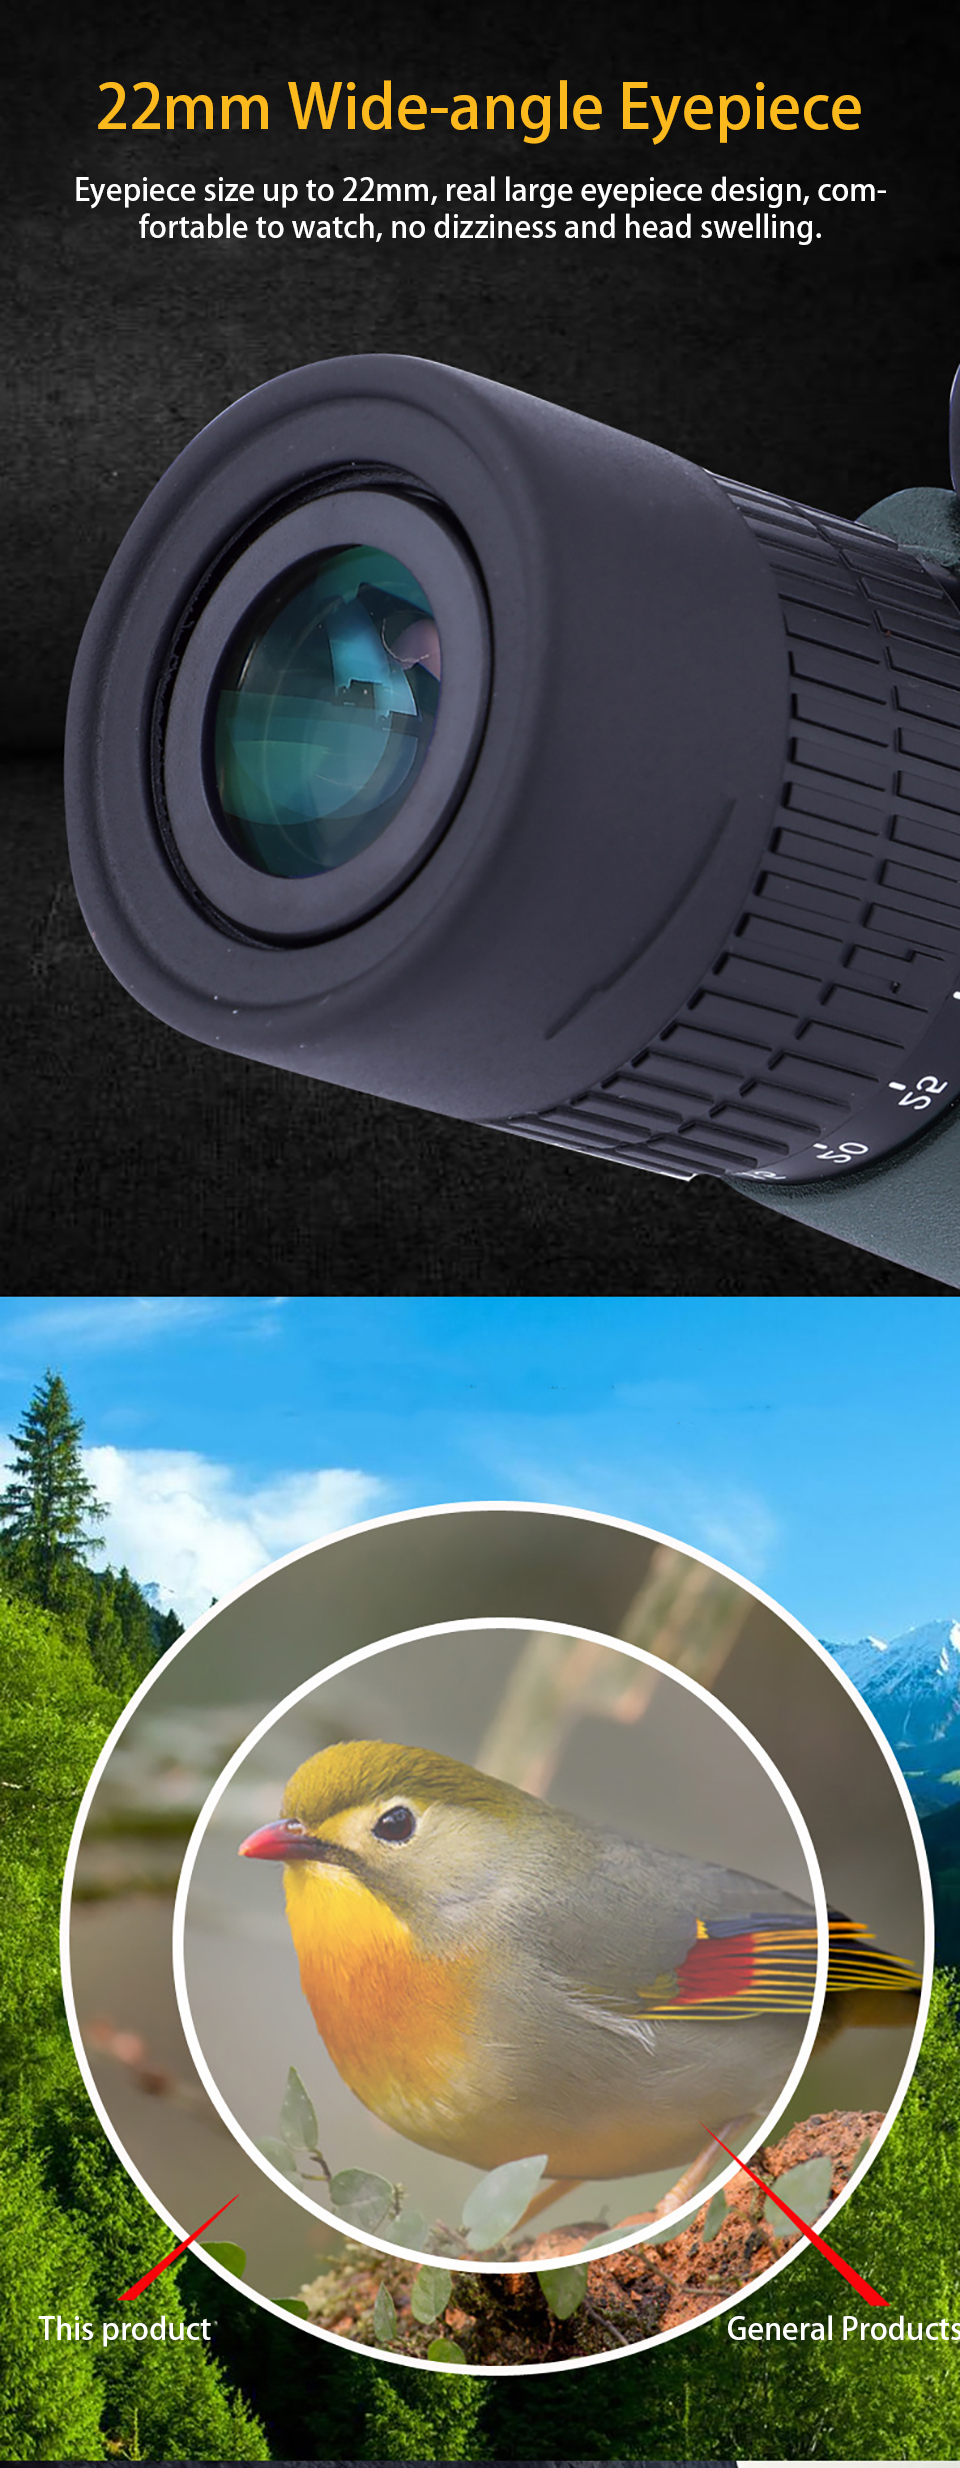 10-30X50 Professional Powerful Monocular Telescope Long Range Zoom Military Hunting Optical BKA4 Eyeglass for Camping Tourism, (Telescope For Sale, Telescope For Adults, Telescope For Kids, Telescope For Beginners, Best Outdoor Telescope).